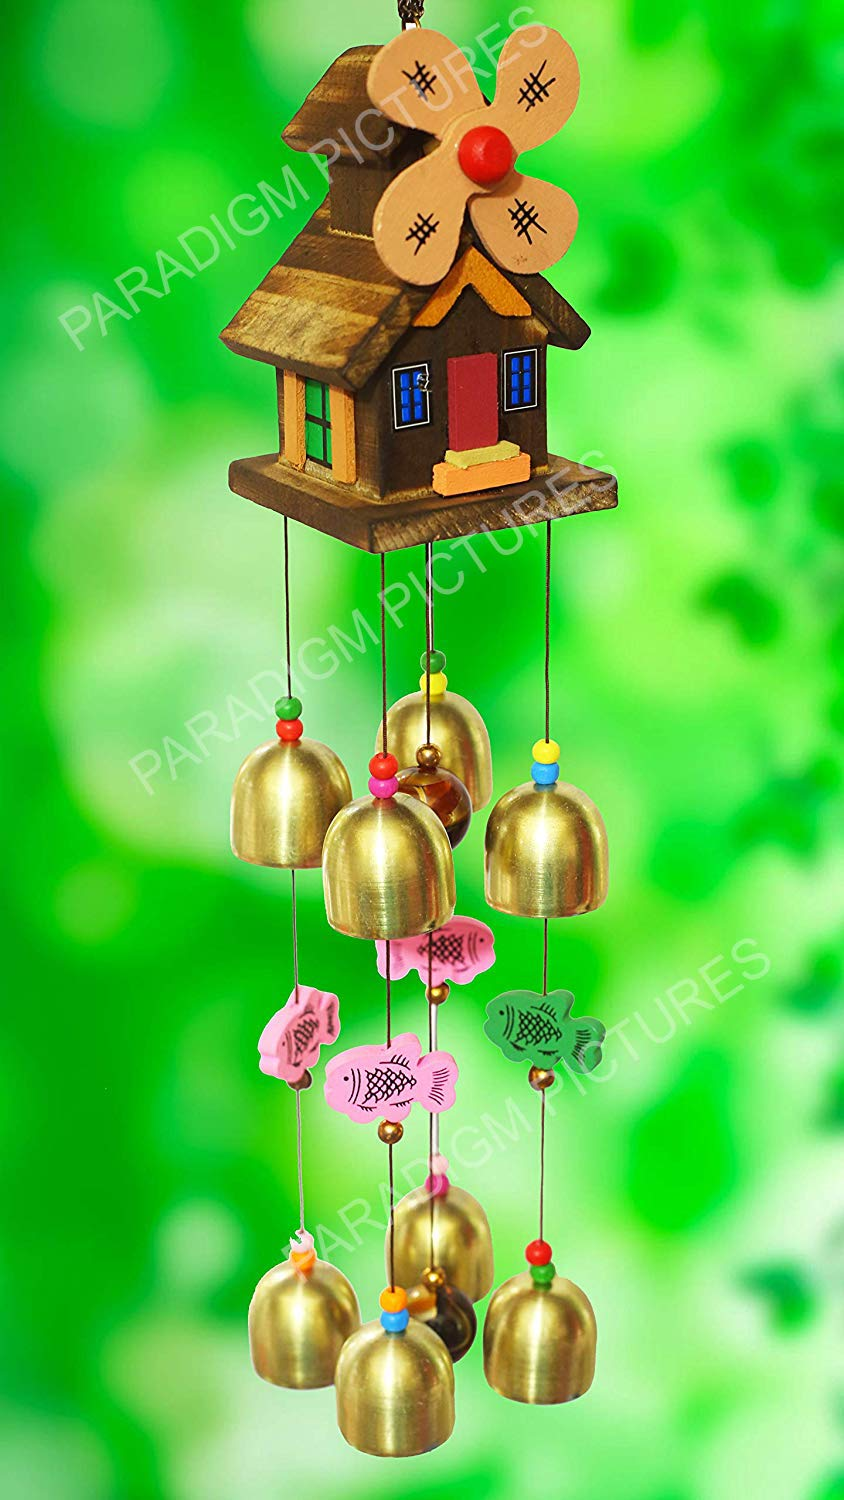 PARADIGM PICTURES Feng Shui Wind Chime for Bedroom || Home Decoration Items  …